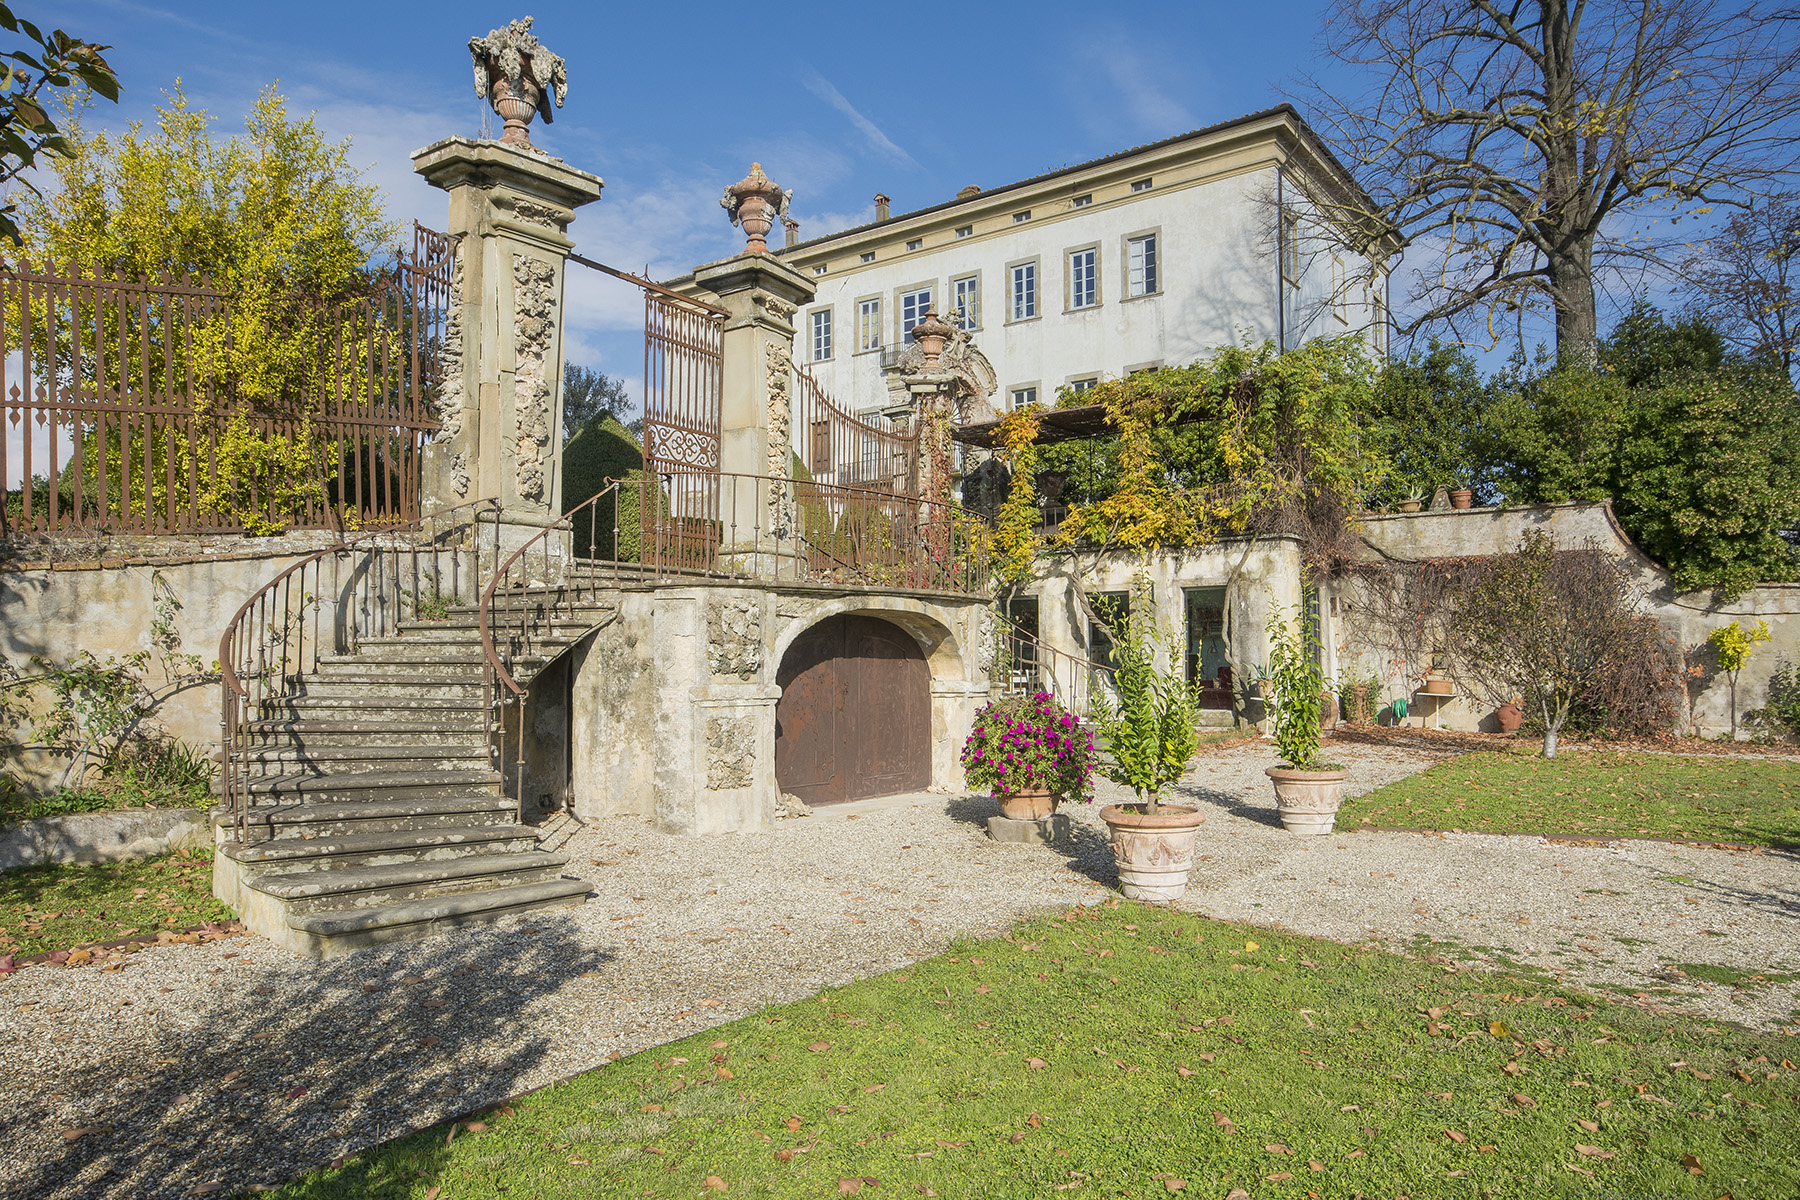 Apartment for Sale at Two apartments in an historic 18th century villa Serravalle Pistoiese, Pistoia Italy